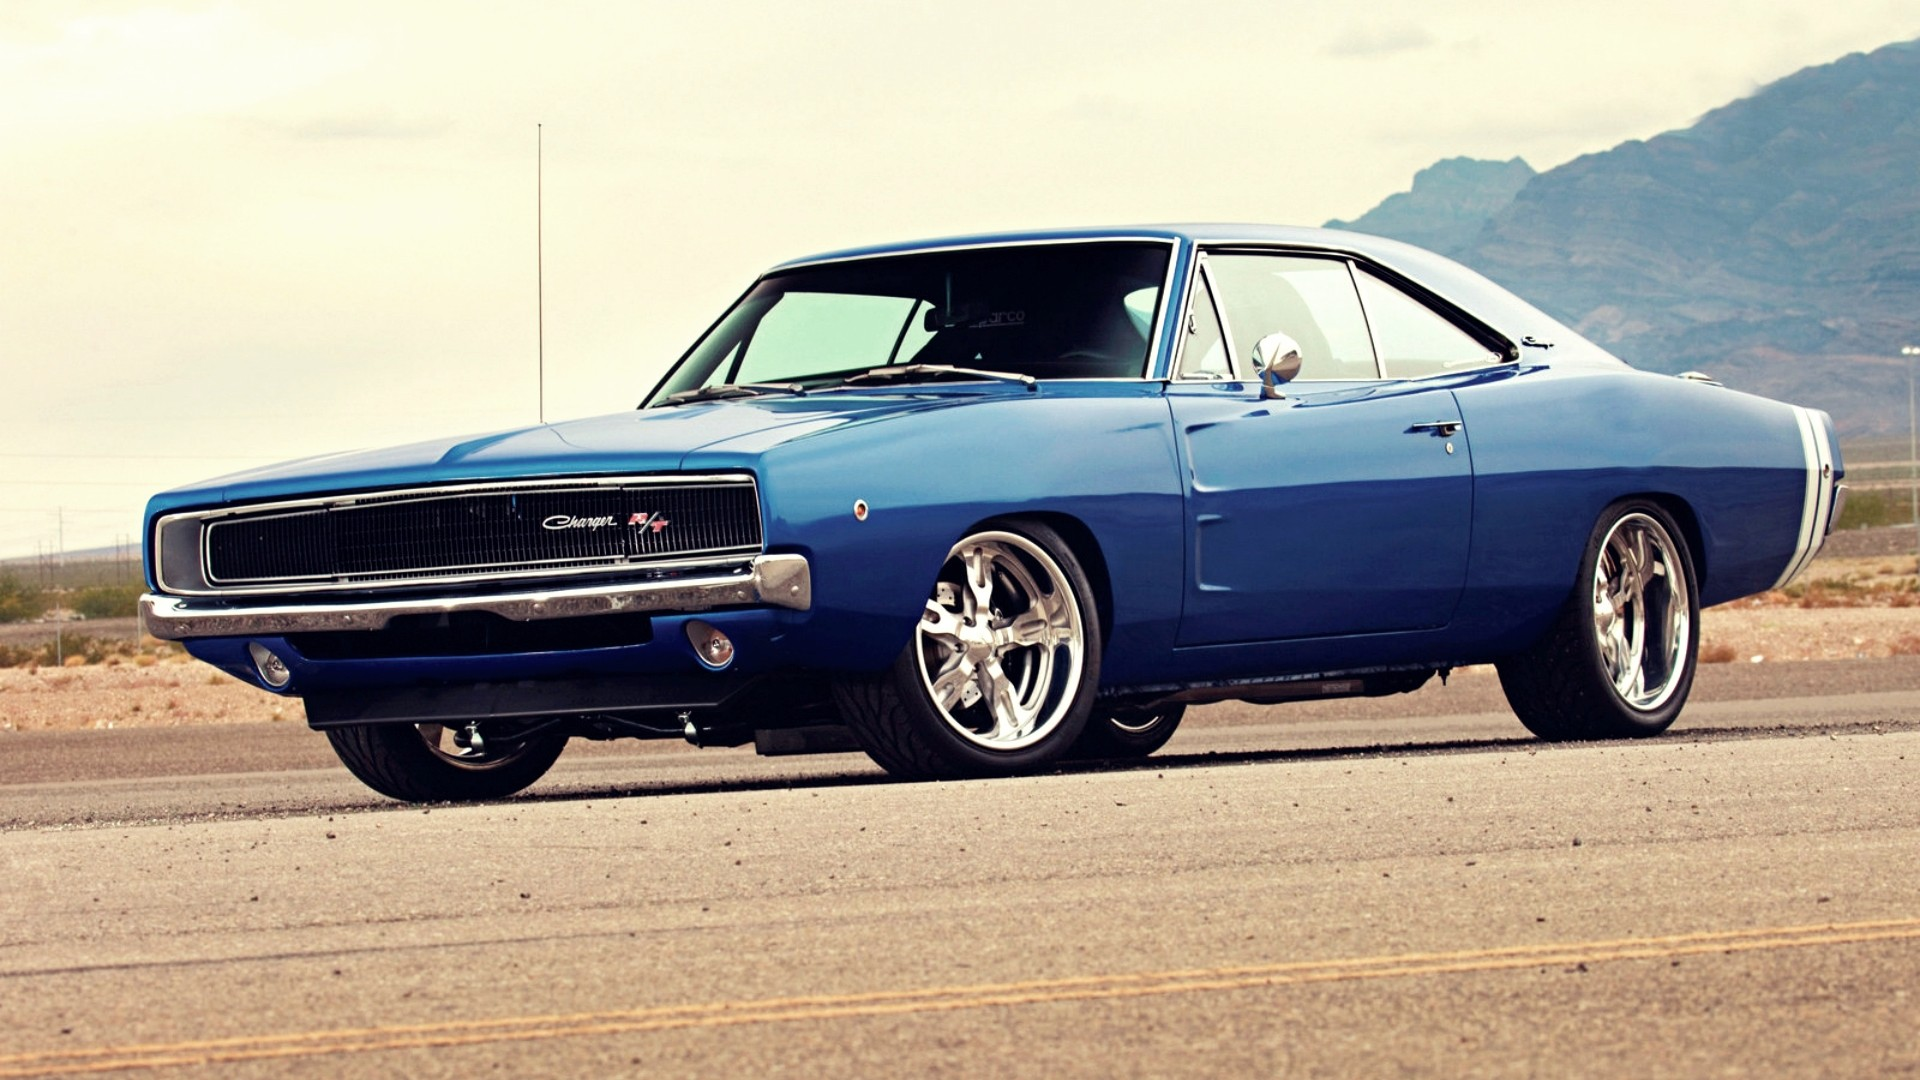 Introducing You To The 1970 Dodge Charger Carlassic